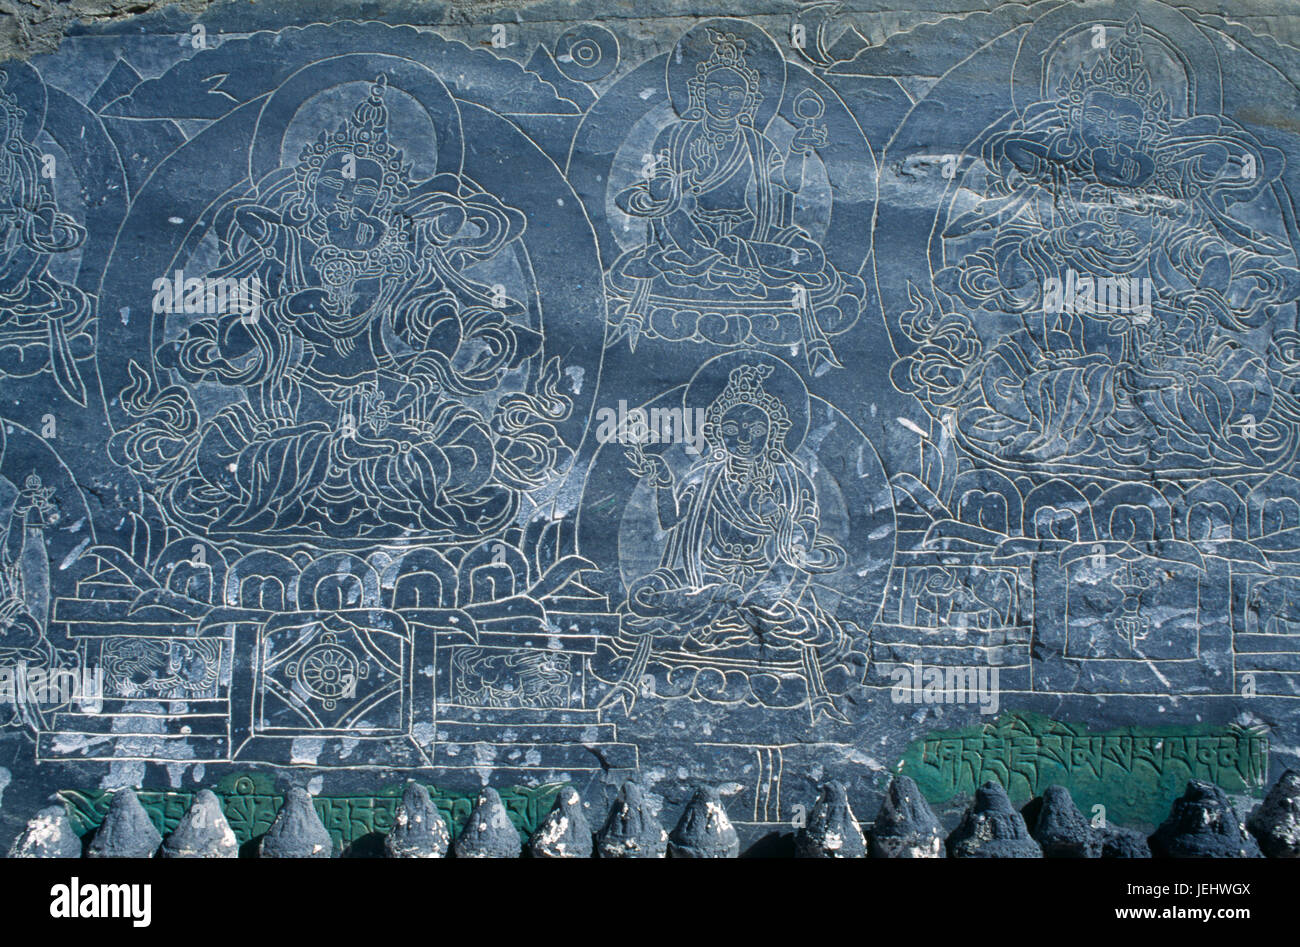 Nepal, Annapurna Region, Stone engraved with mantra and Buddhist deities. - Stock Image